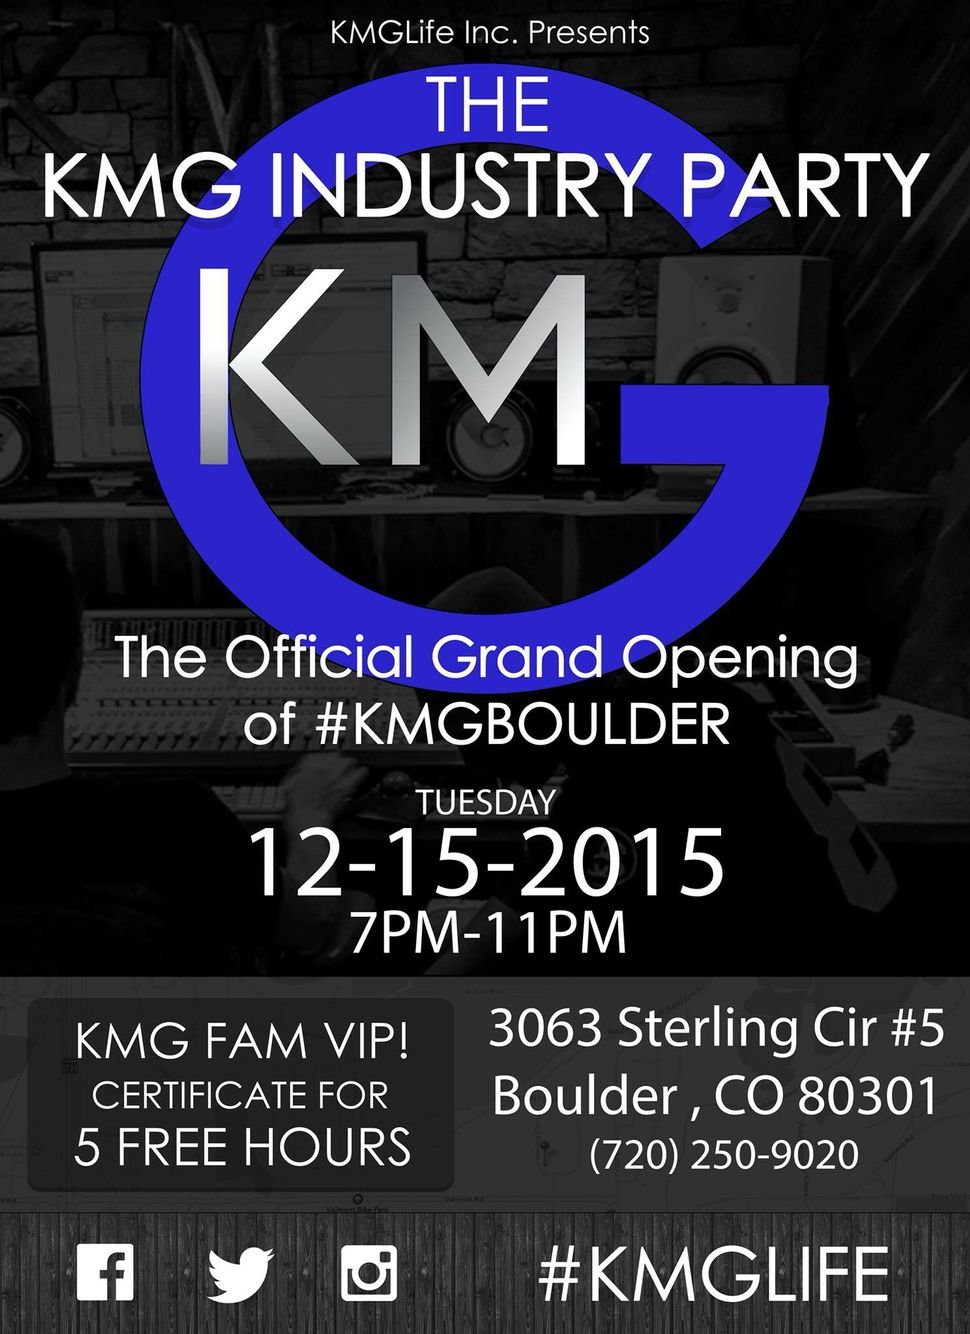 Busy planning decor and refreshments for this event, it's going to be huge. We are all so pumped! #KMGLIFE